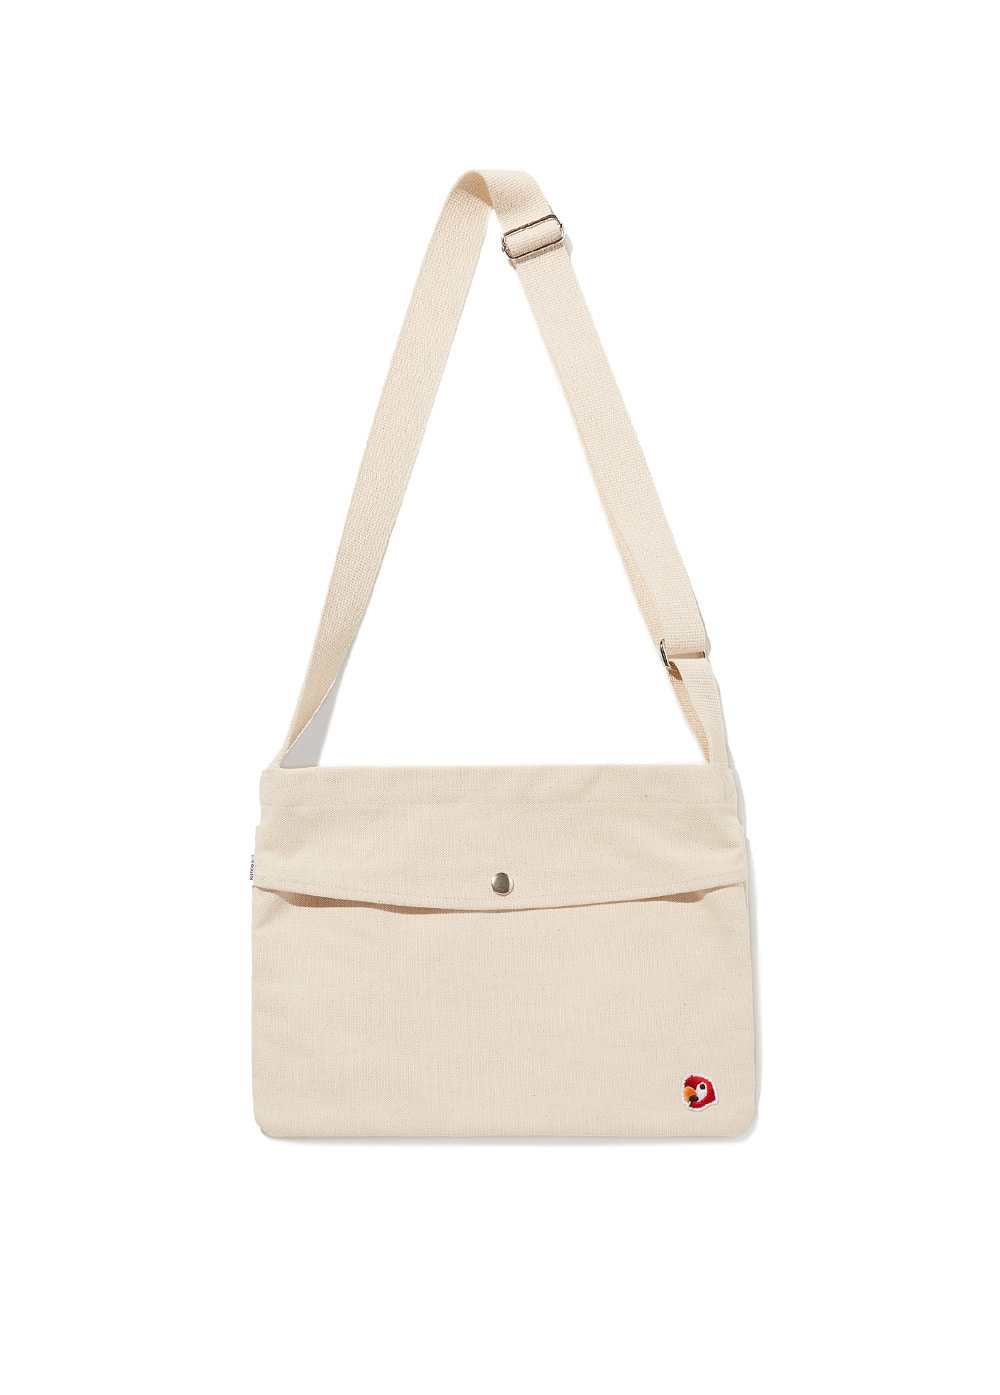 KANCO CANVAS 3WAY CROSS BAG ivory